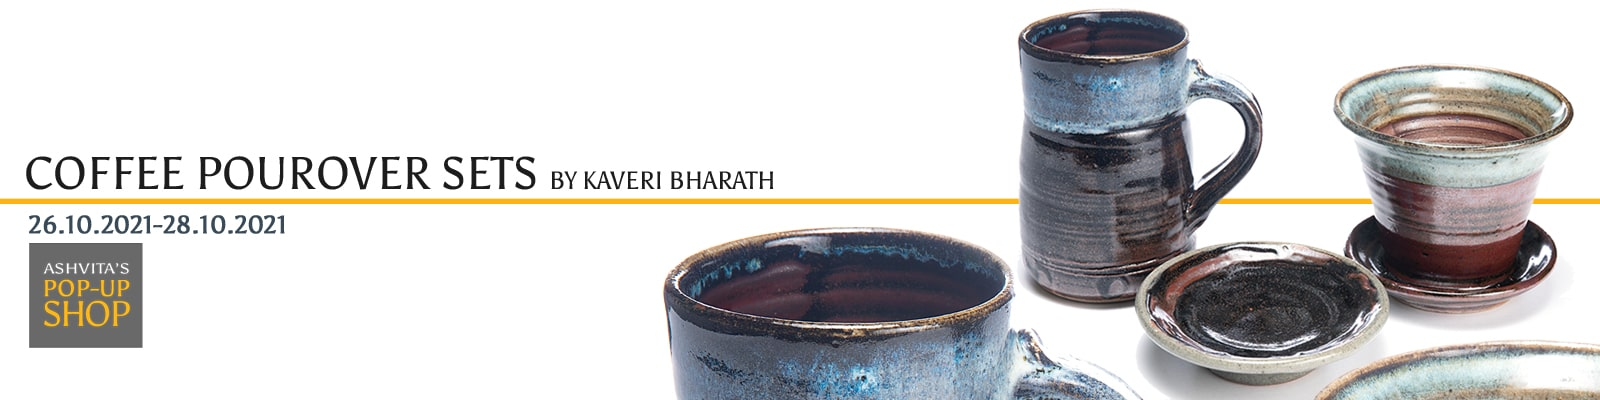 Coffee Pourover Sets By Kaveri Bharath